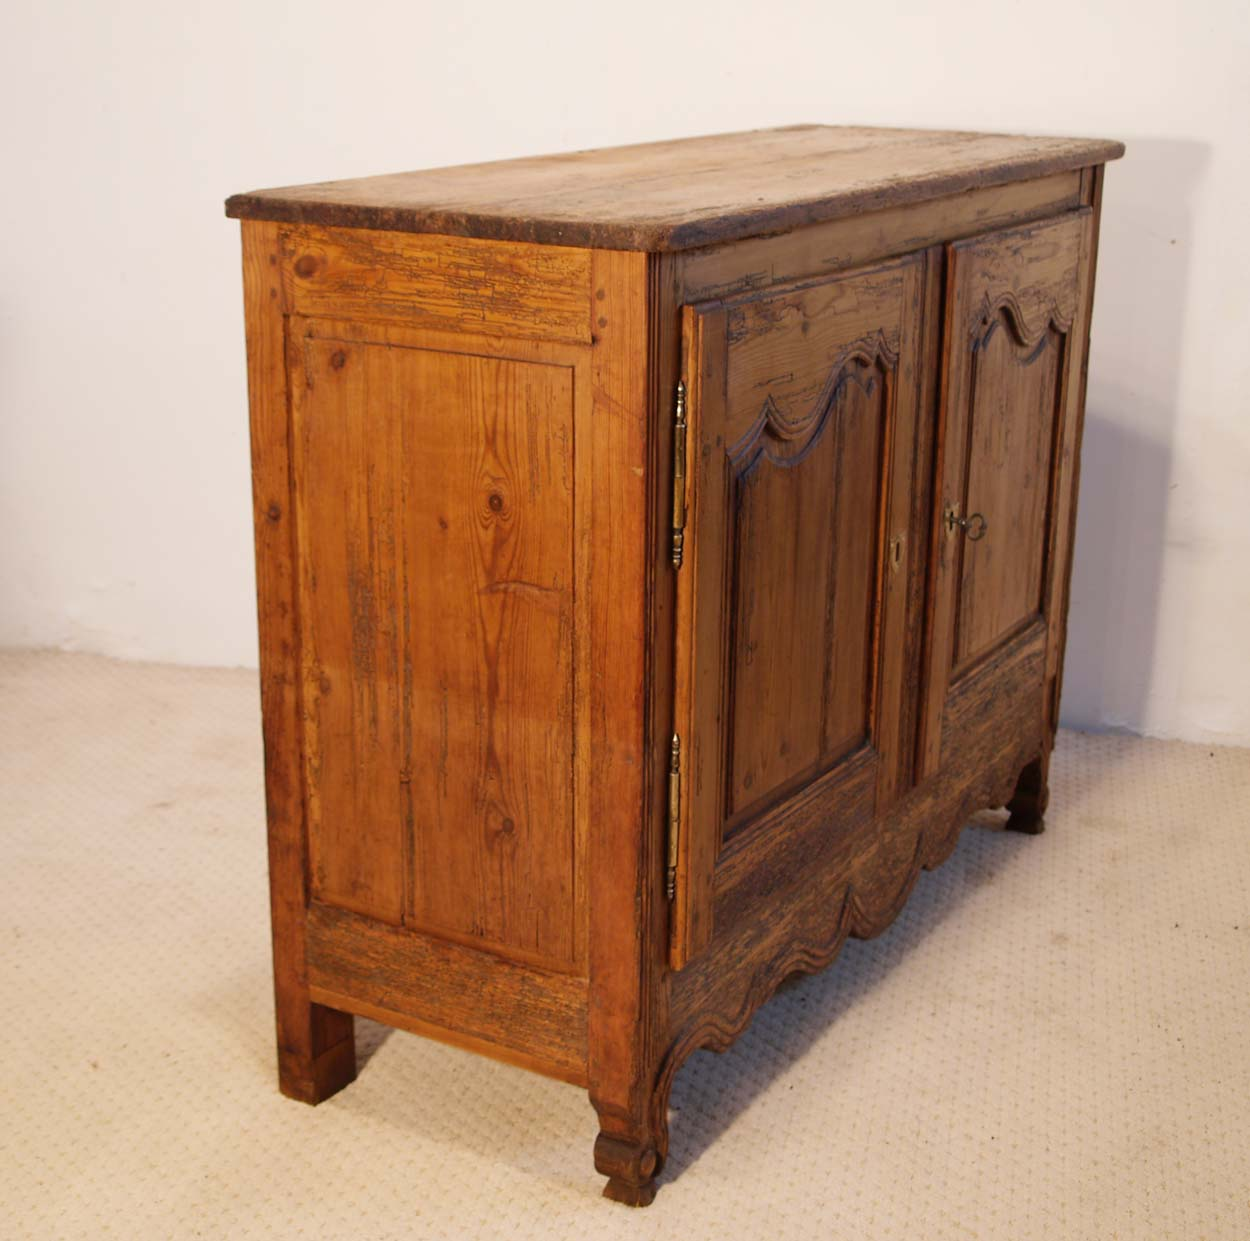 French Antique Pine Buffet / Sideboard, C 1780, left elevation